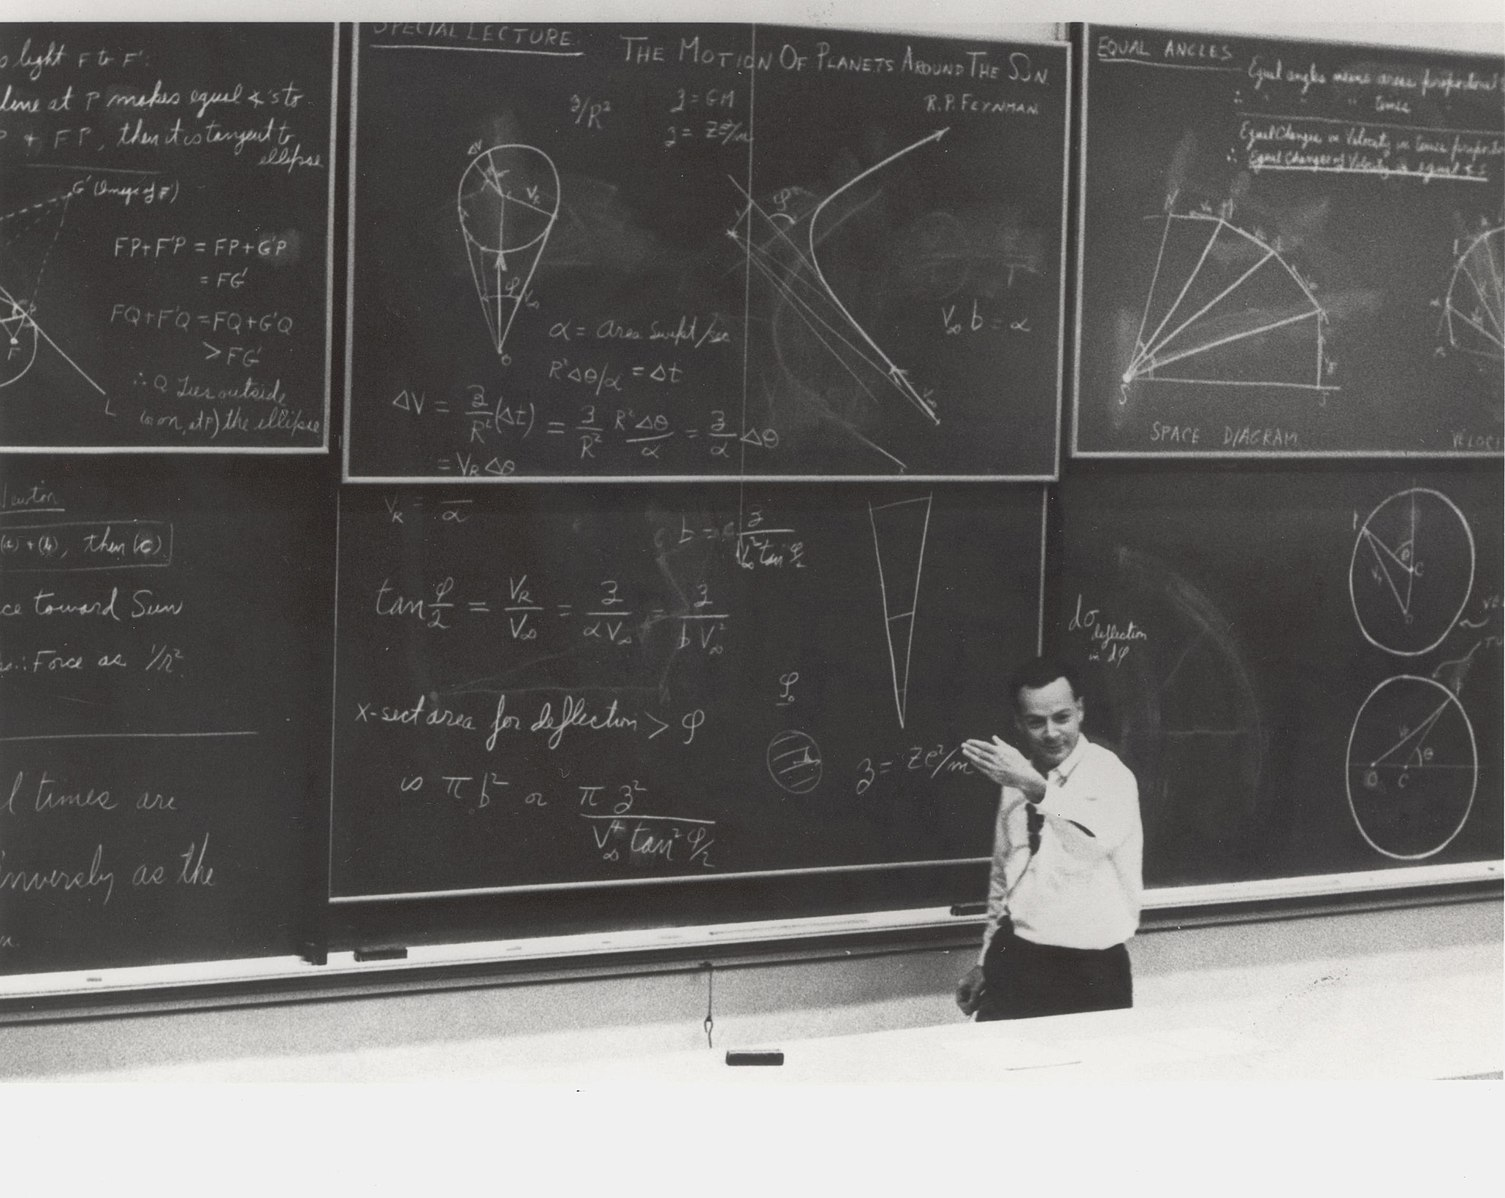 Man at a college-lecture-hall-sized blackboard